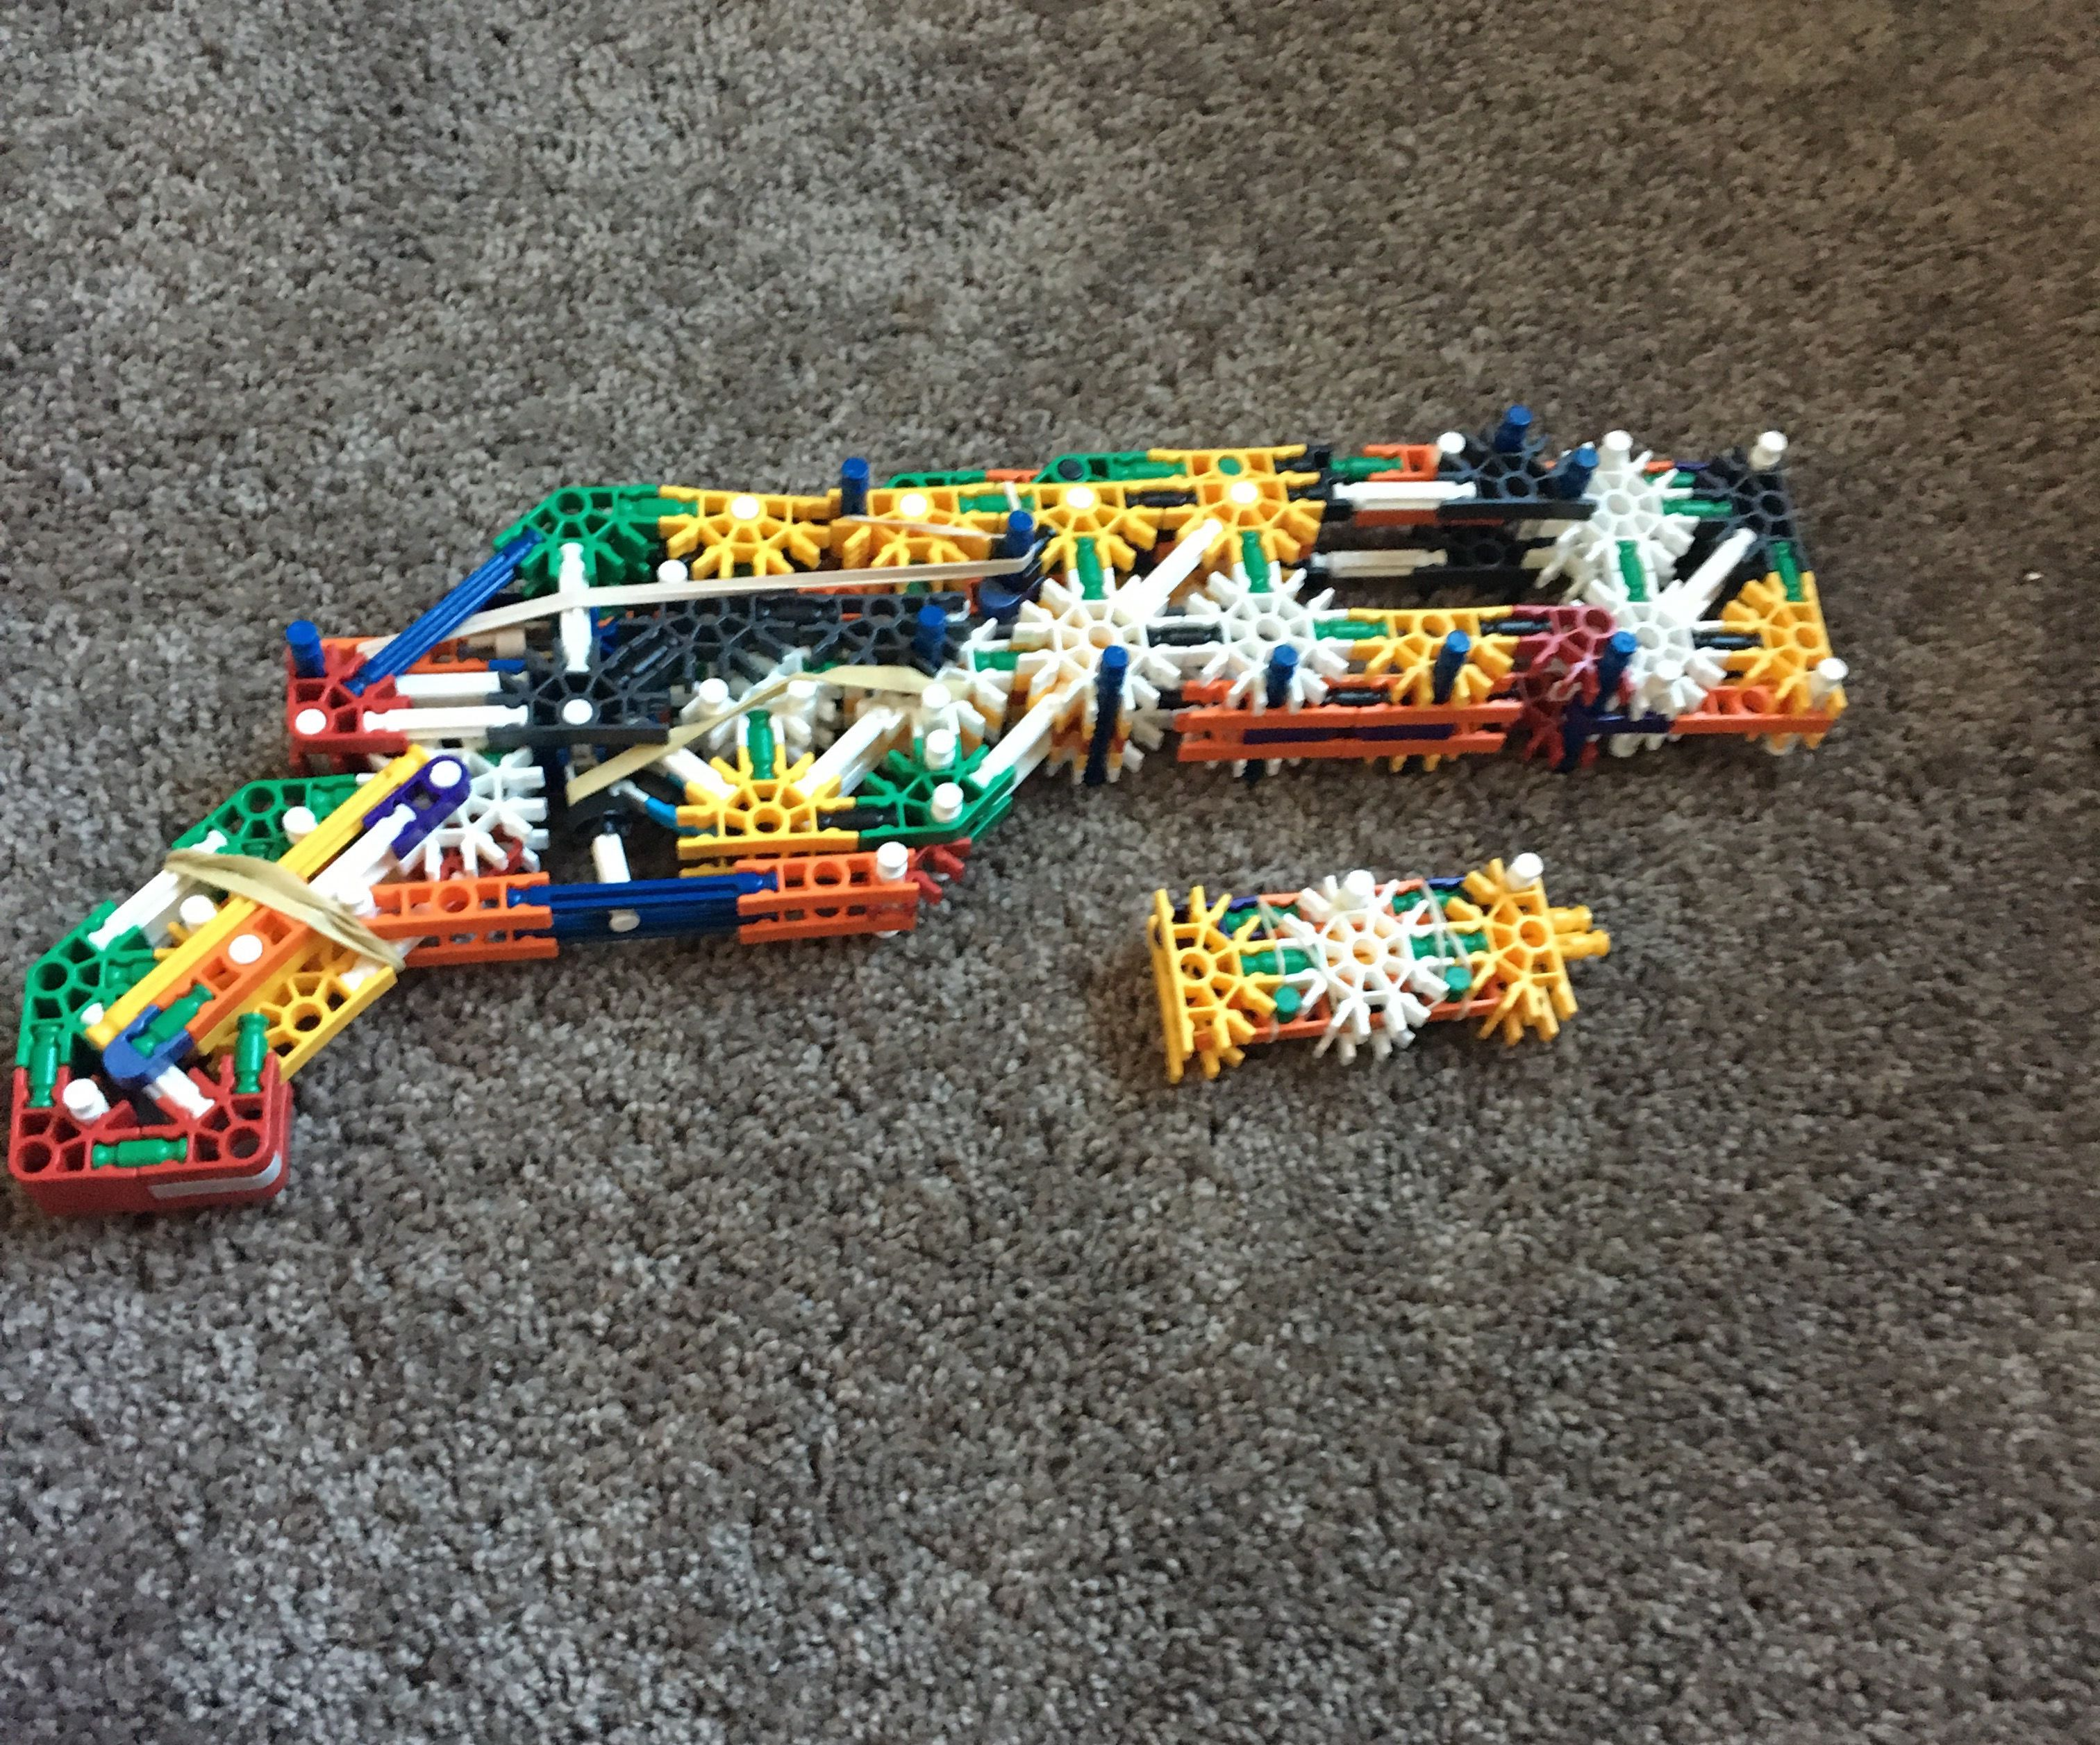 Knex Sawn Off Shotgun V2